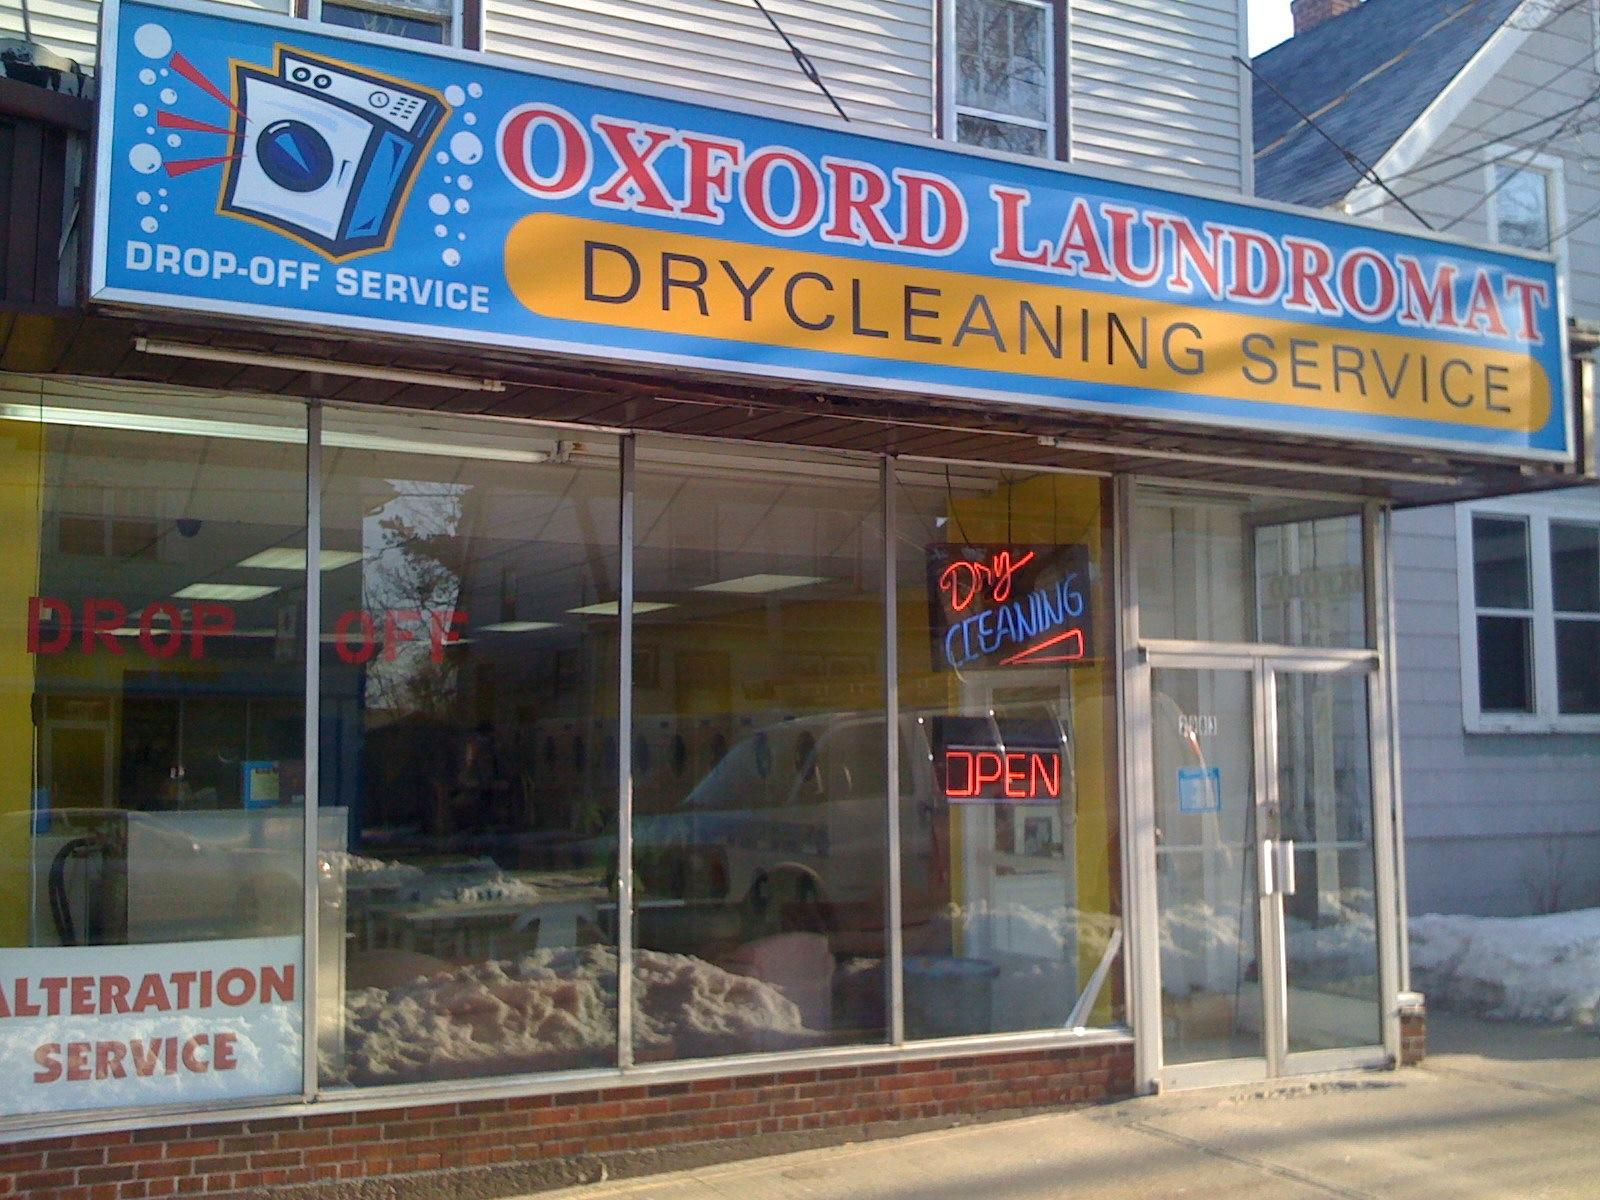 d332/1233067305-oxford_laundromat_pre-renovation.jpg